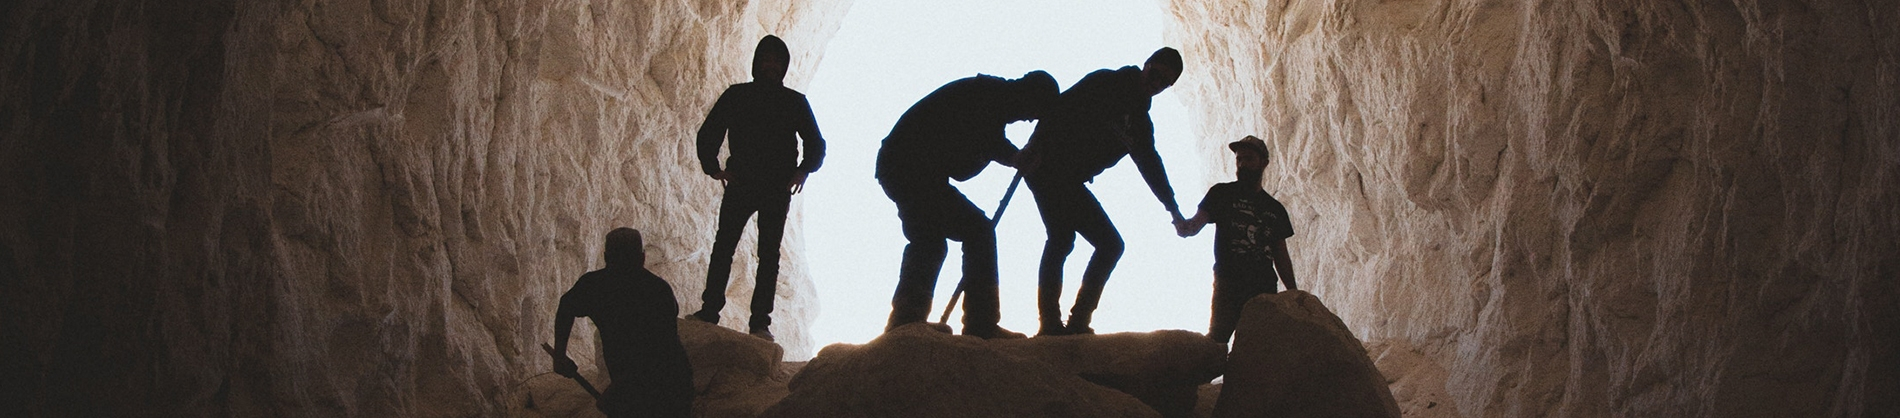 A group of men digging inside of a cave